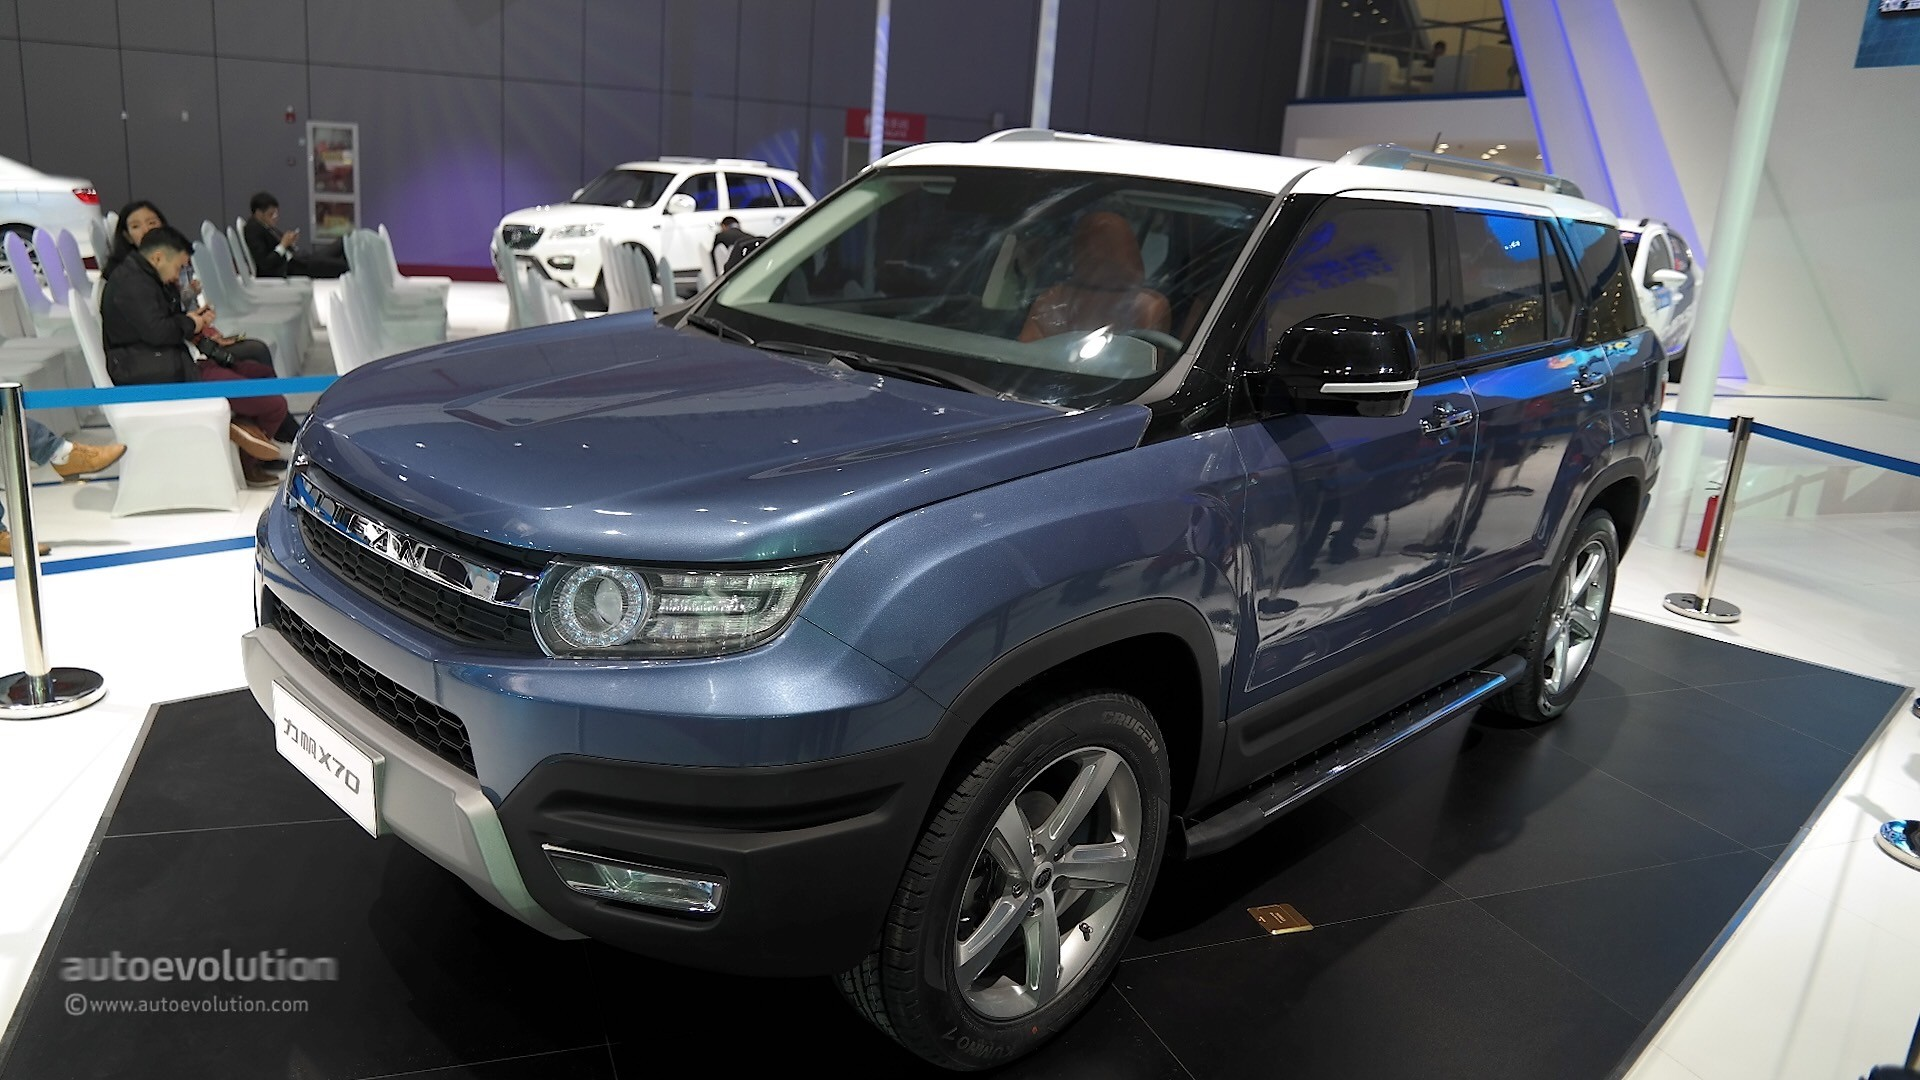 Lifan X70 Suv Concept Takes A Bow At Auto Shanghai 2015